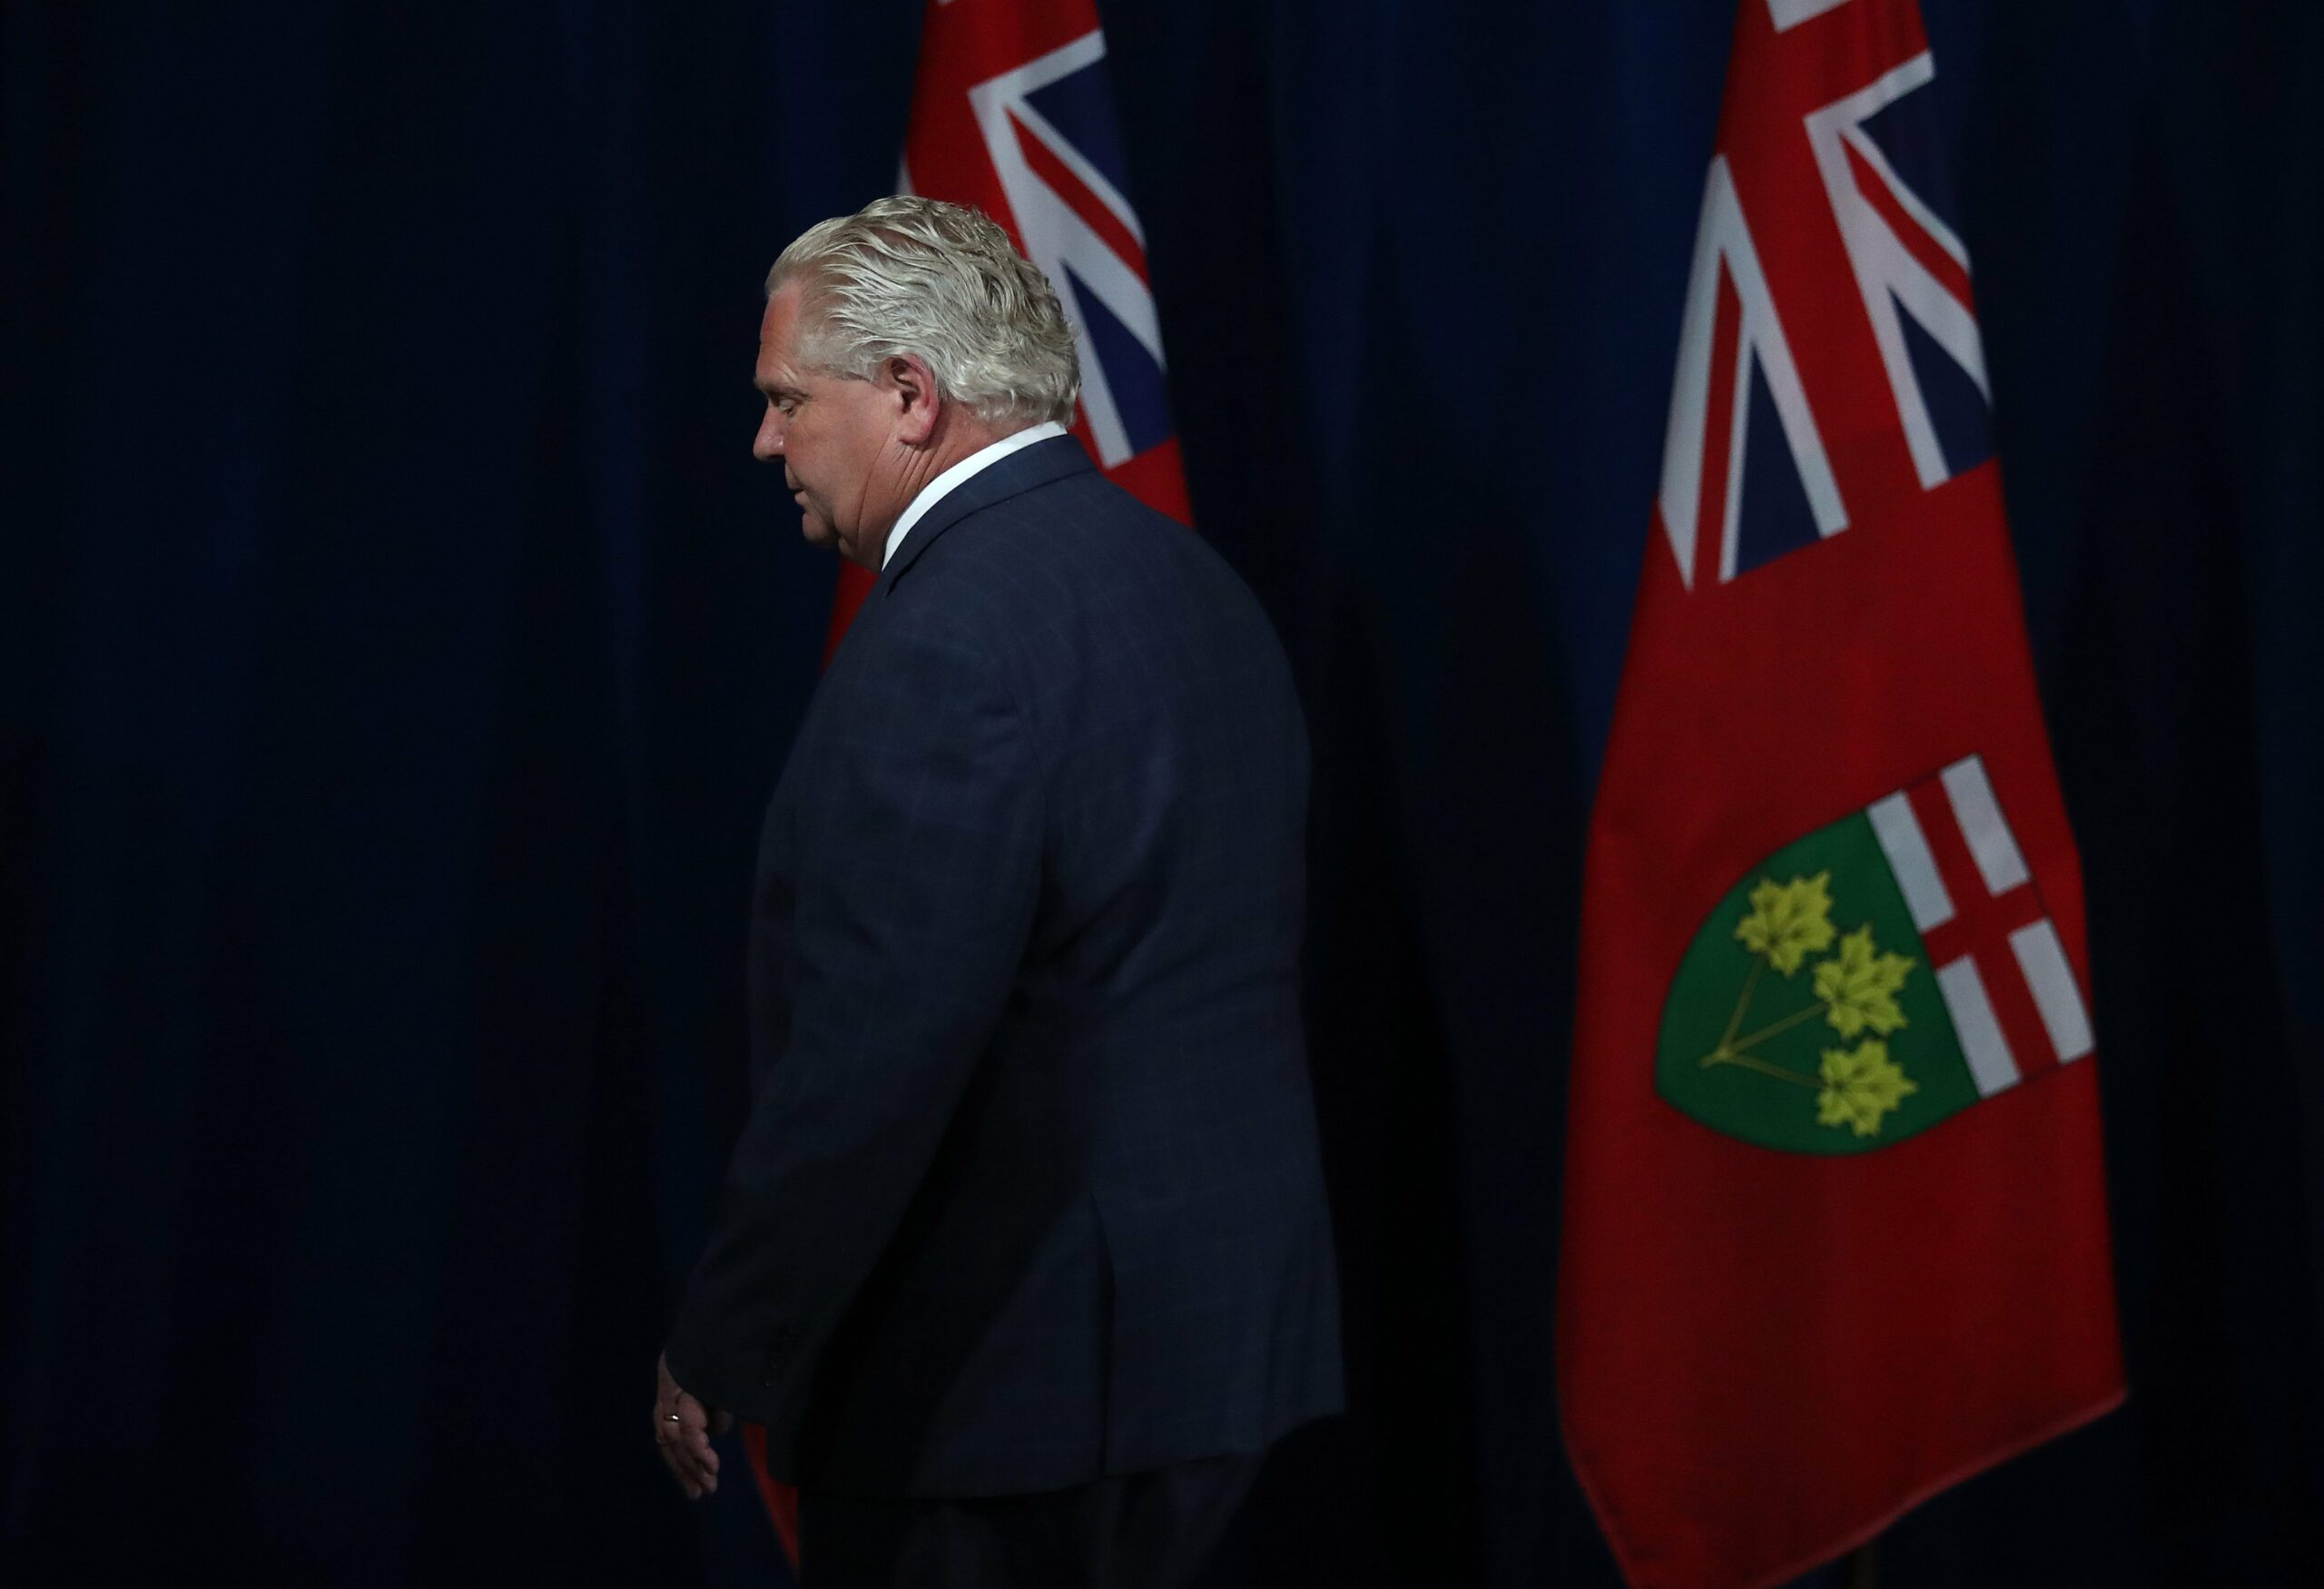 Confusion reigns for stay-at-home order despite premier's pleas